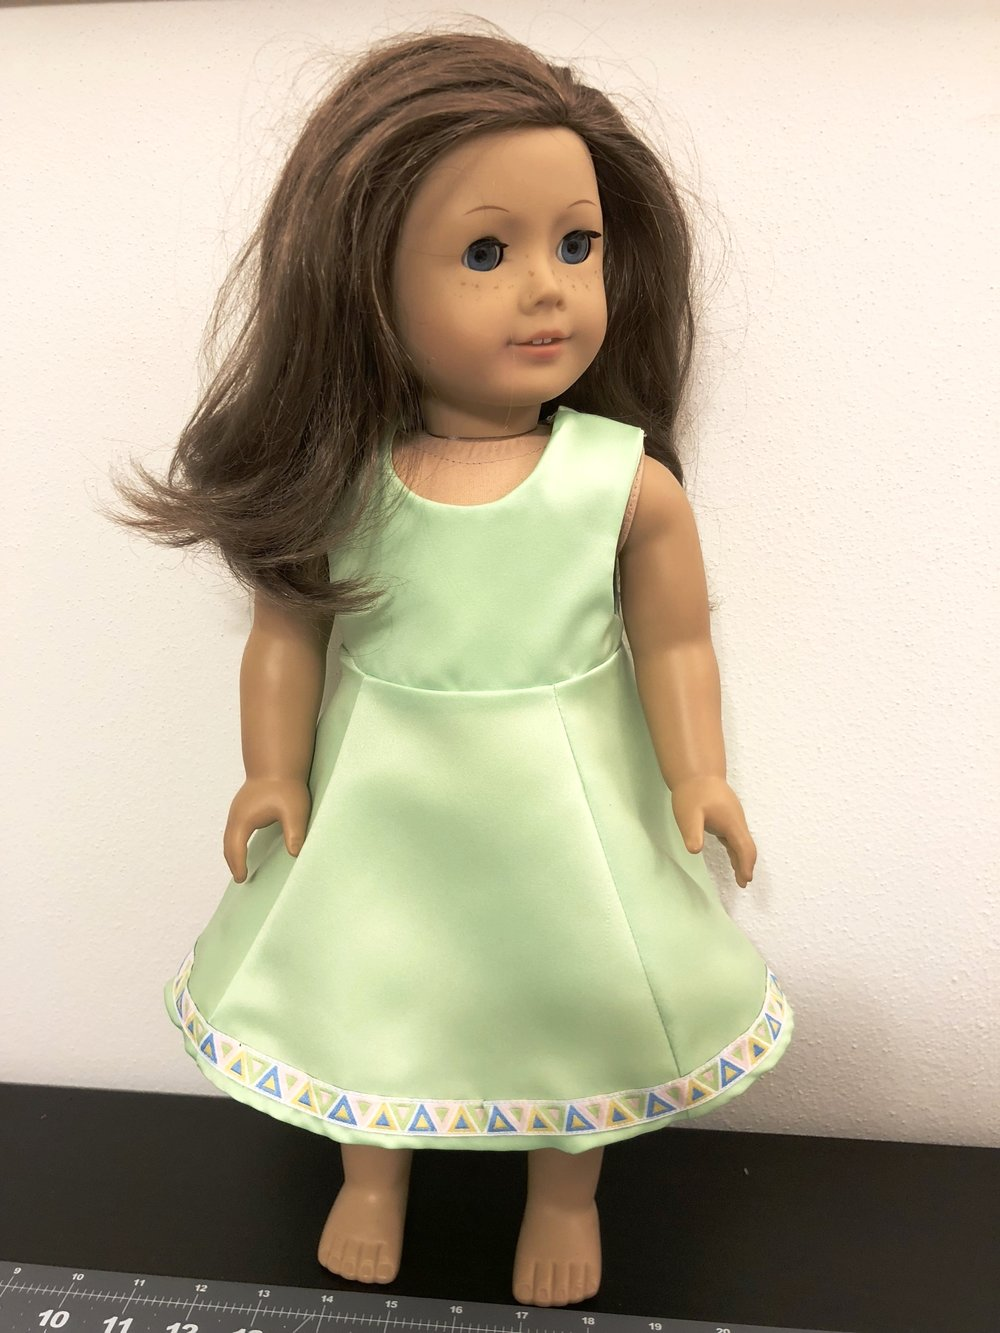 Green matte satin dress with ribbon embellishment. Simple. Girly.